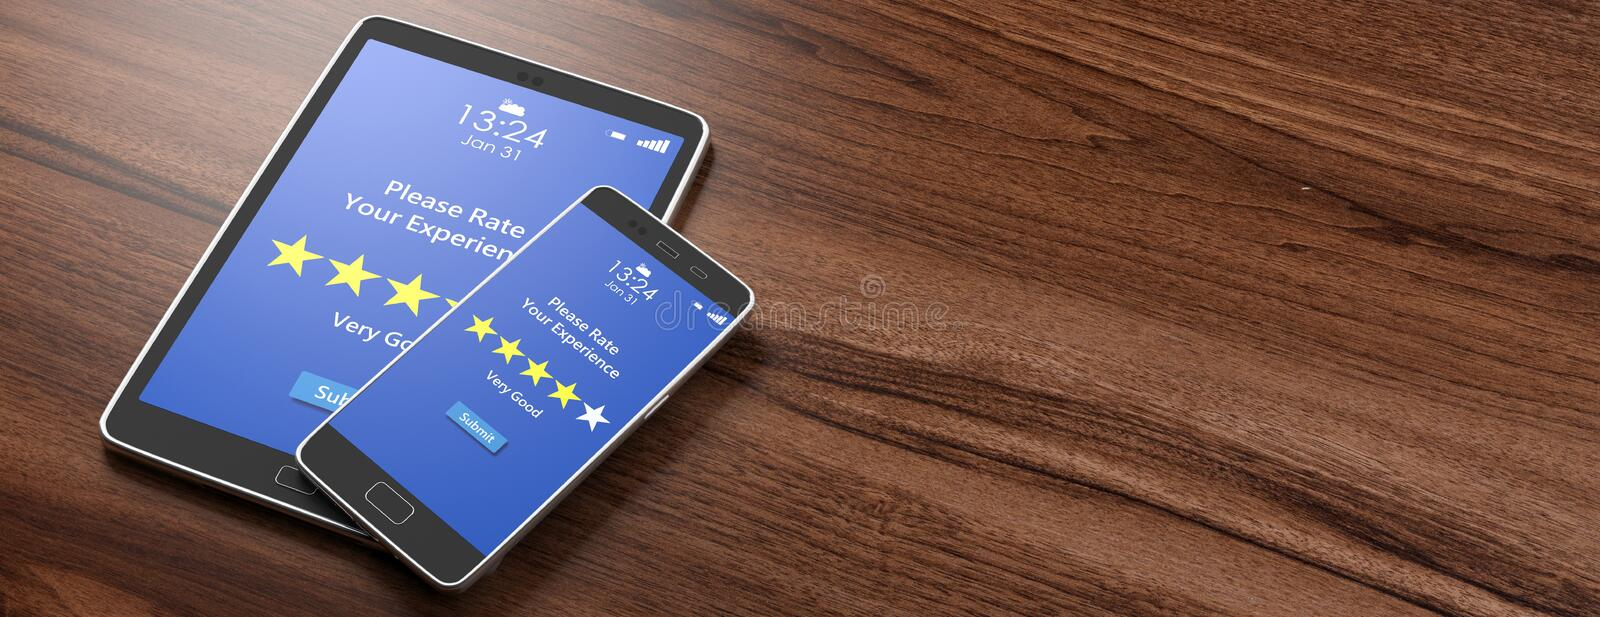 Very good rating on devices screens, wooden background, banner, copy space. 3d illustration. Customers feedback, rating, review. 4 stars, very good text on stock illustration